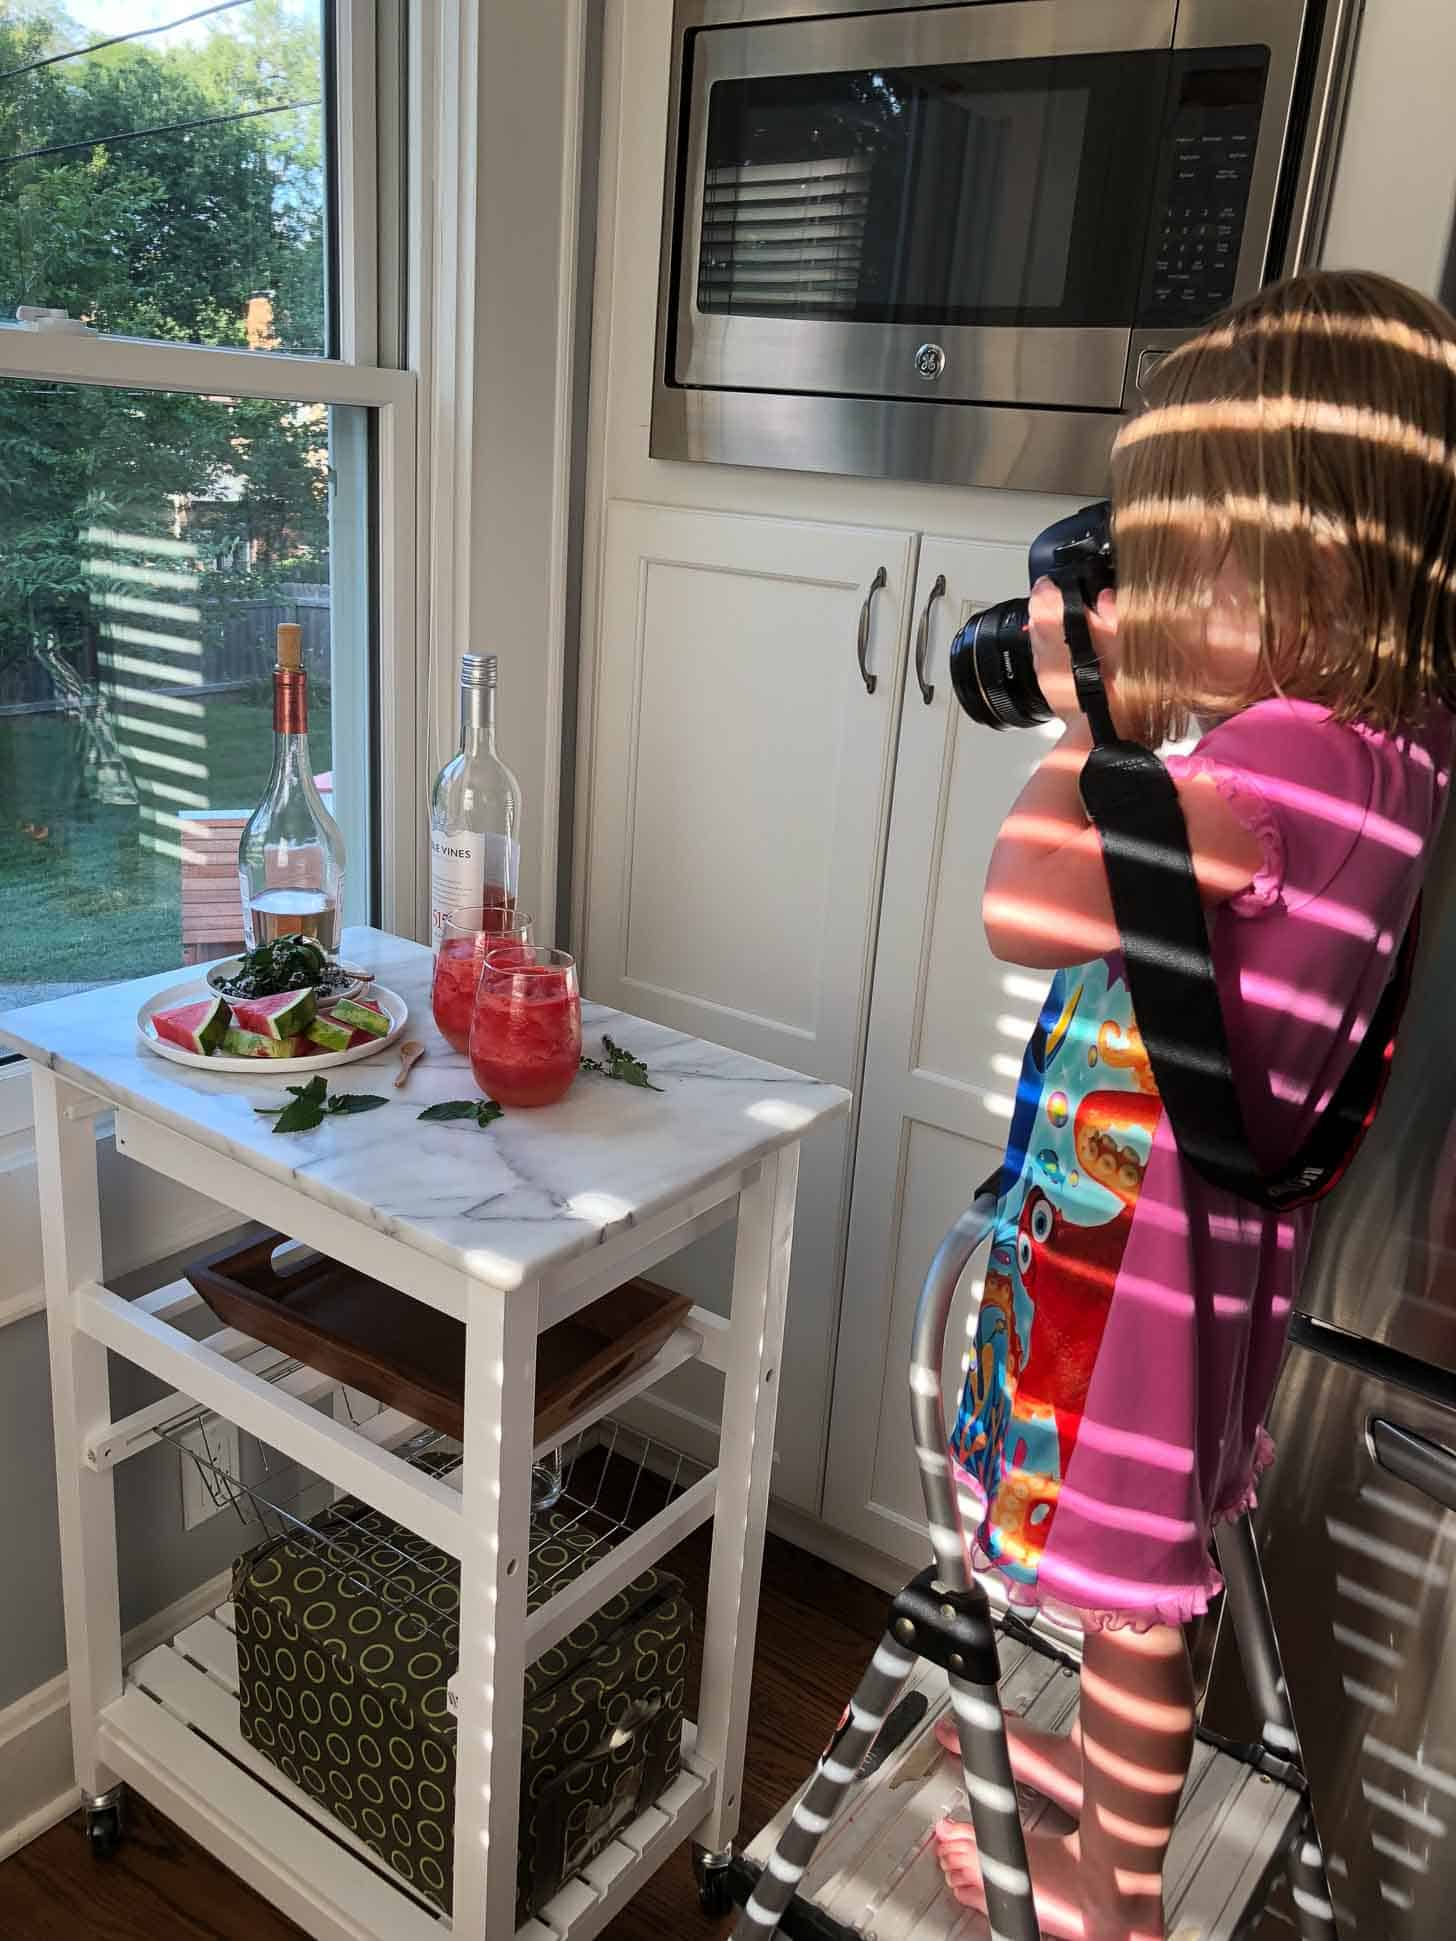 Clara taking pictures of a food display